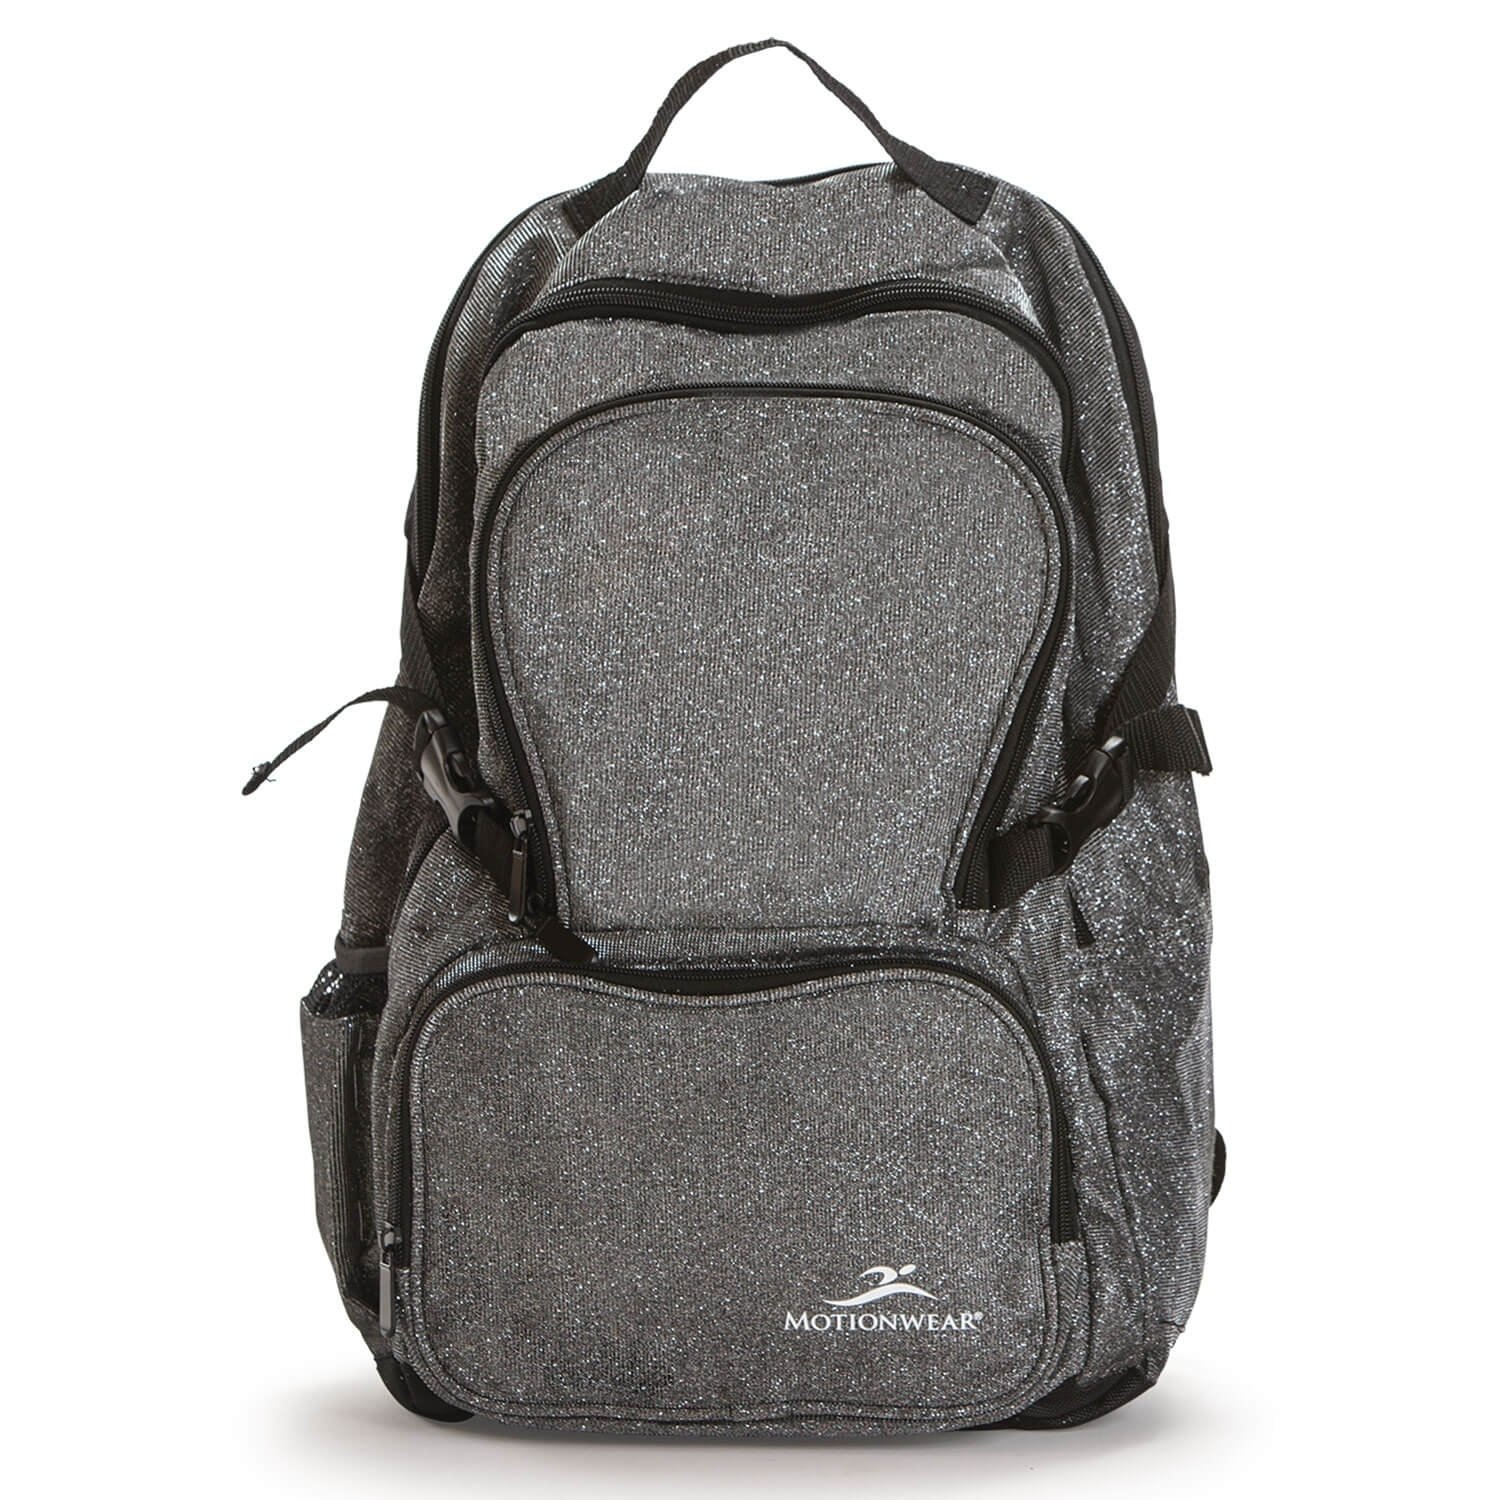 Motionwear Silver Backpack